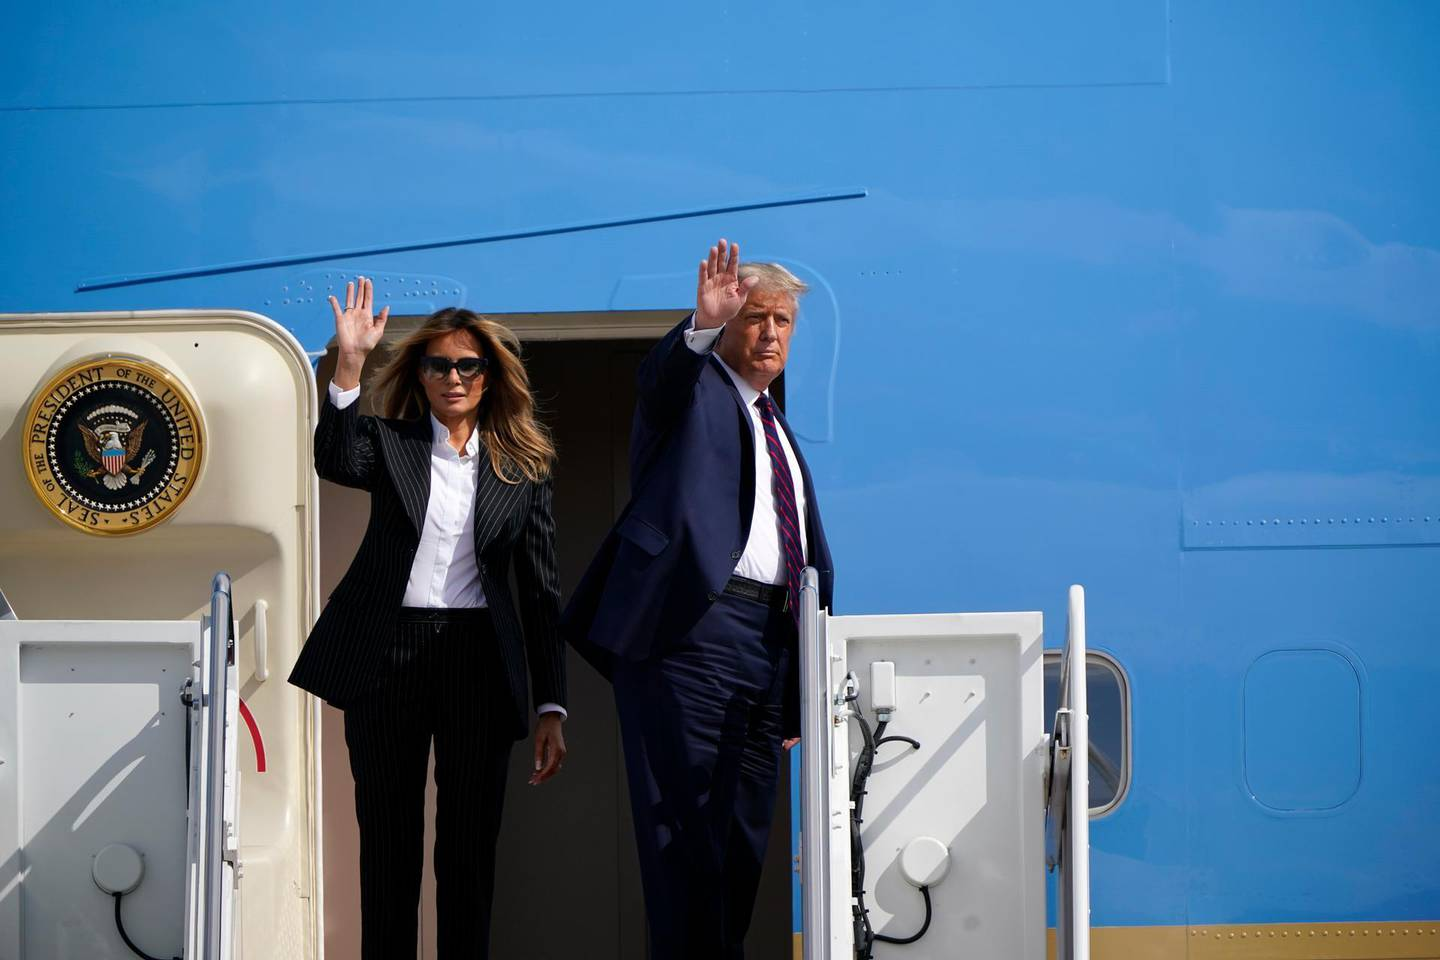 President Donald Trump and first lady Melania Trump wave before boarding Air Force One to travel to the first presidential debate in Cleveland, Tuesday, Sept. 29, 2020, in Andrews Air Force Base, Md. (AP Photo/J. Scott Applewhite)